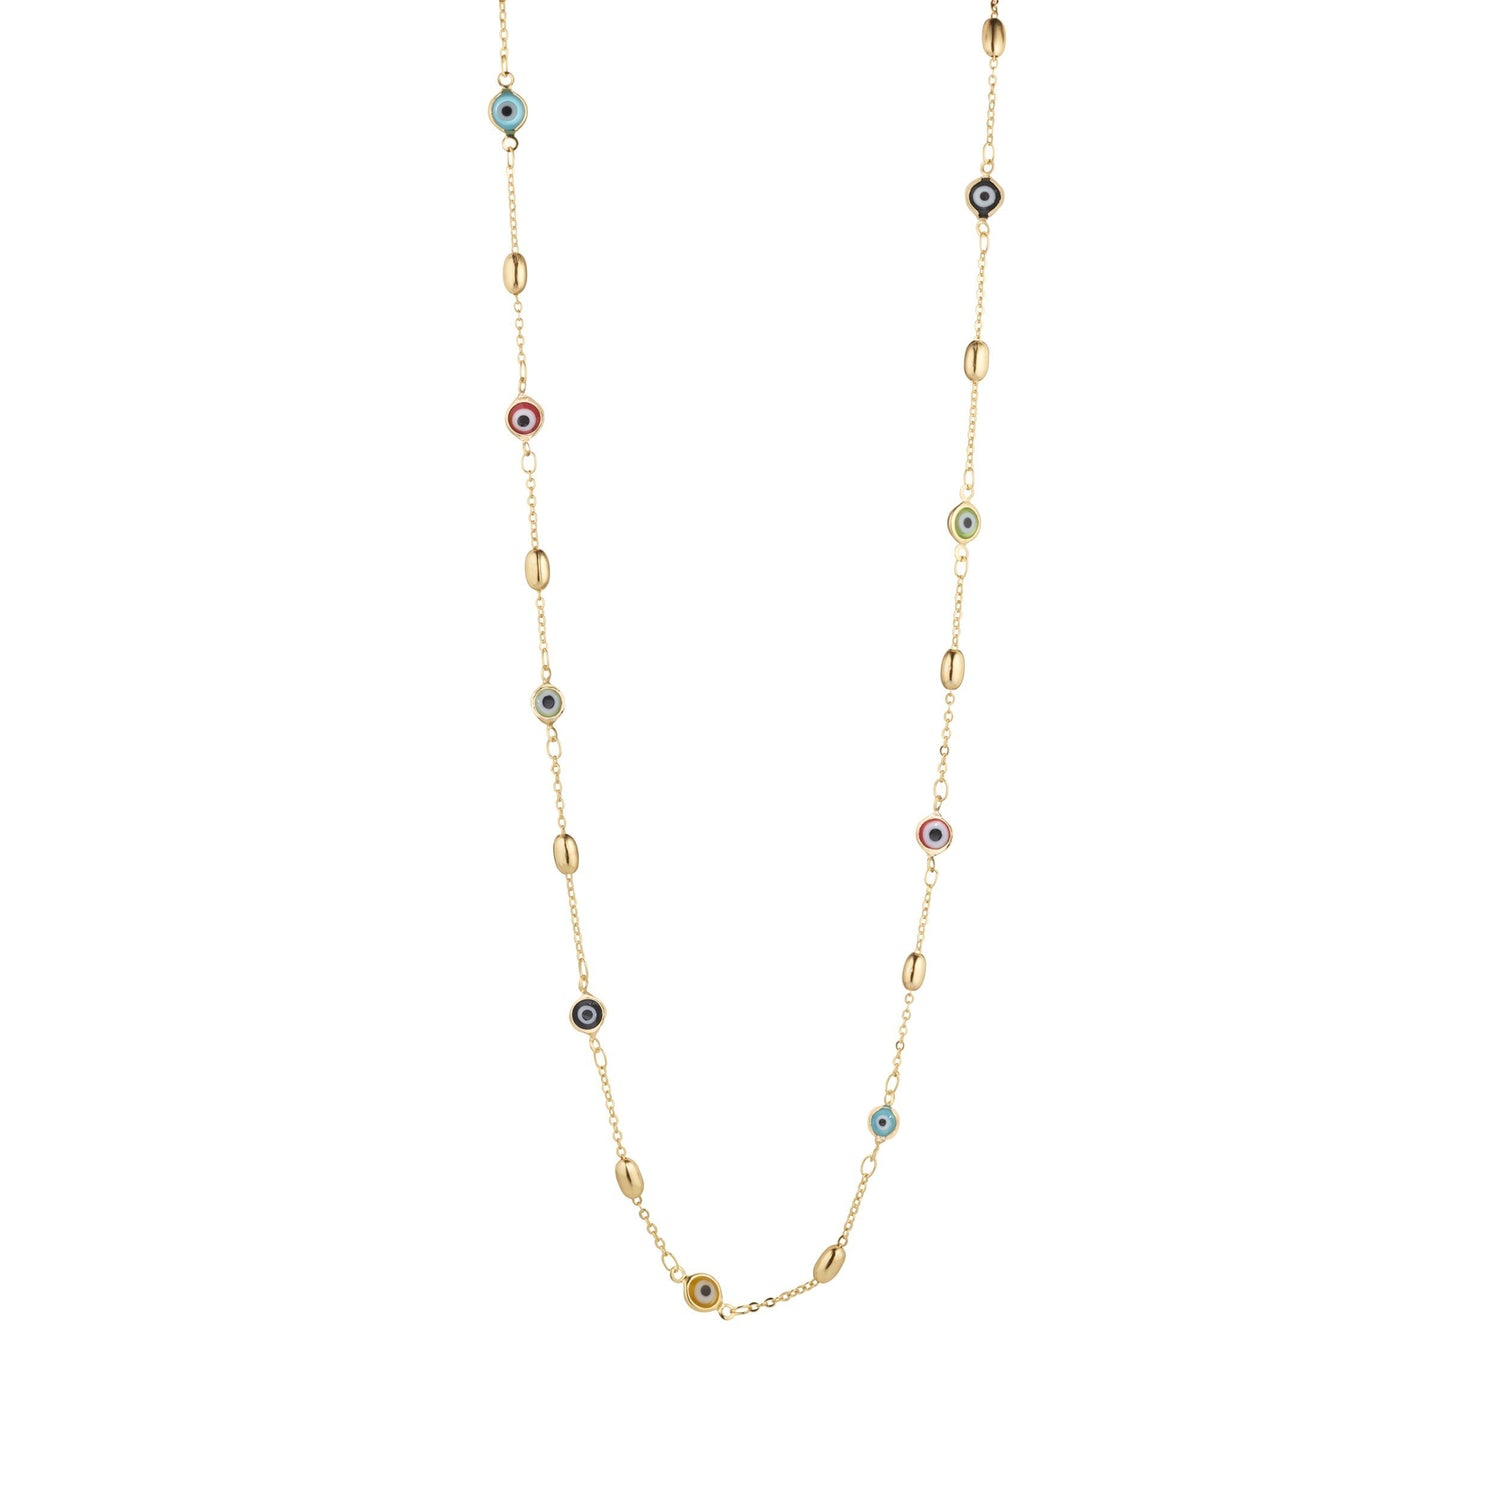 Chain Necklace With Third Eye Charms For Protection